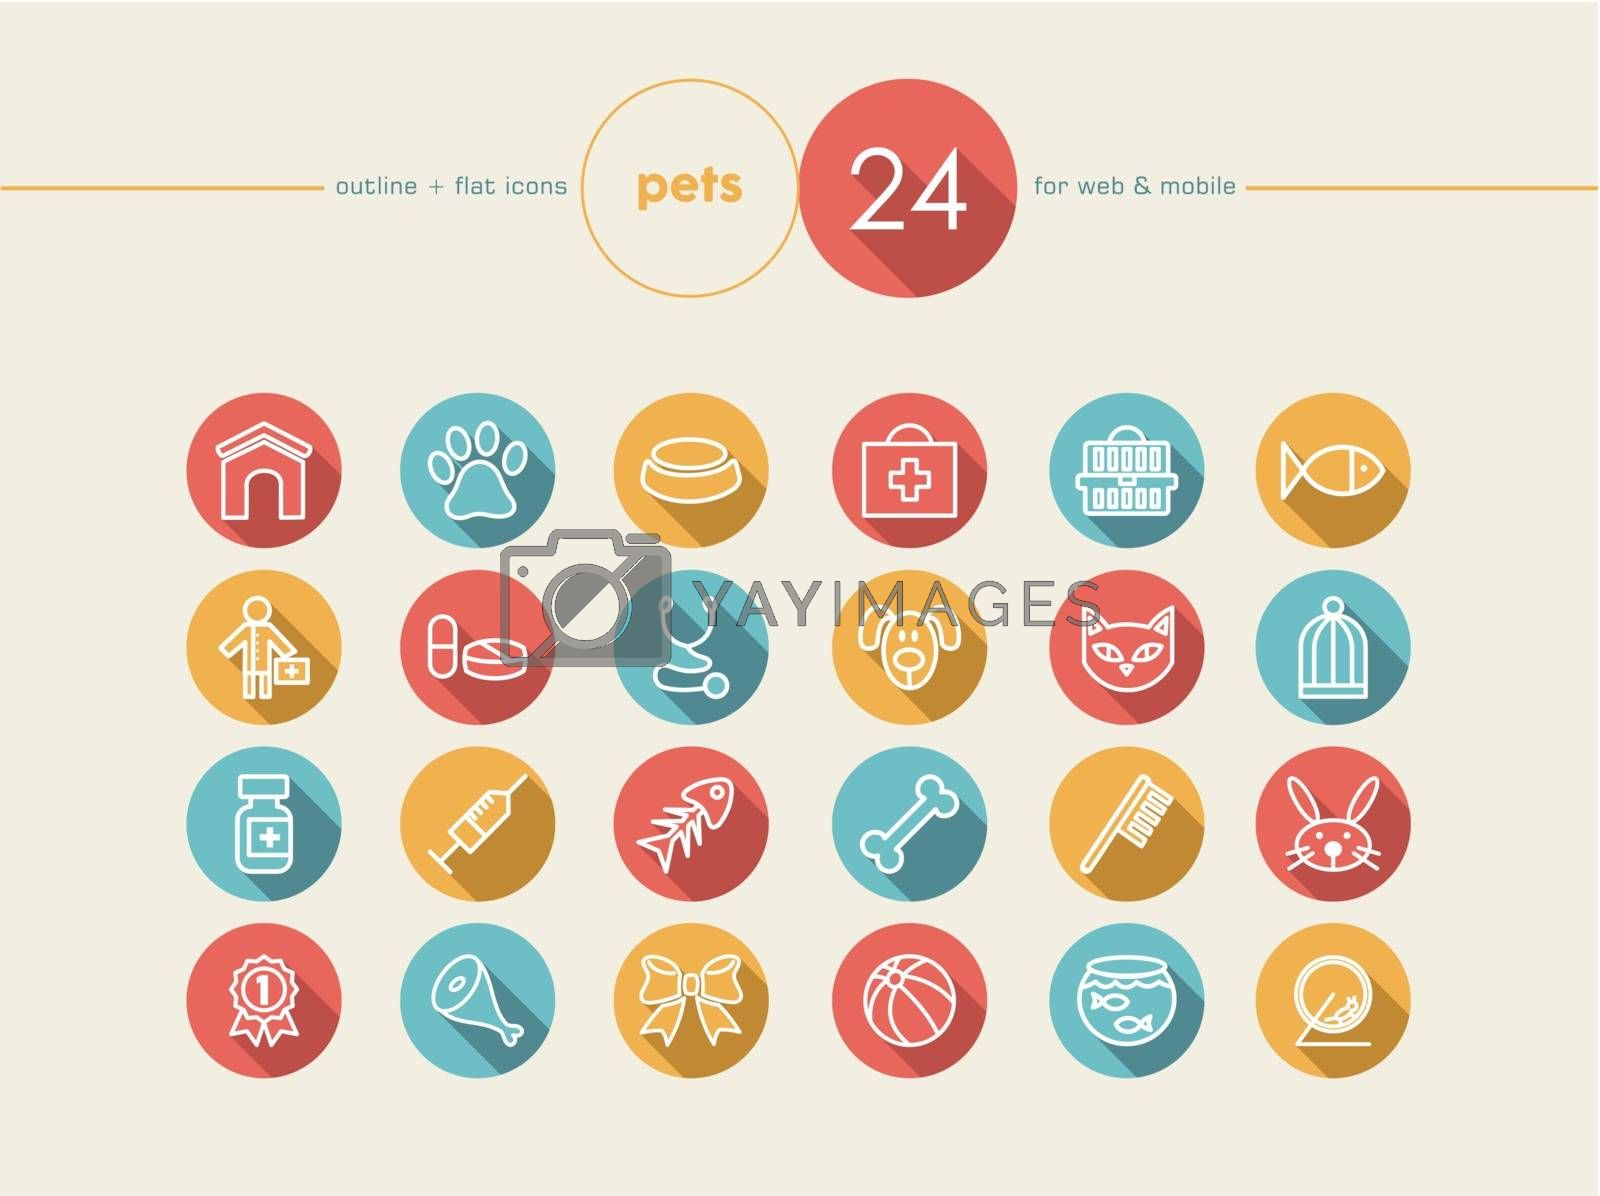 Pet and Vet colorful flat icons set for web and mobile app. Health care for pets. EPS10 vector file organized in layers for easy editing.